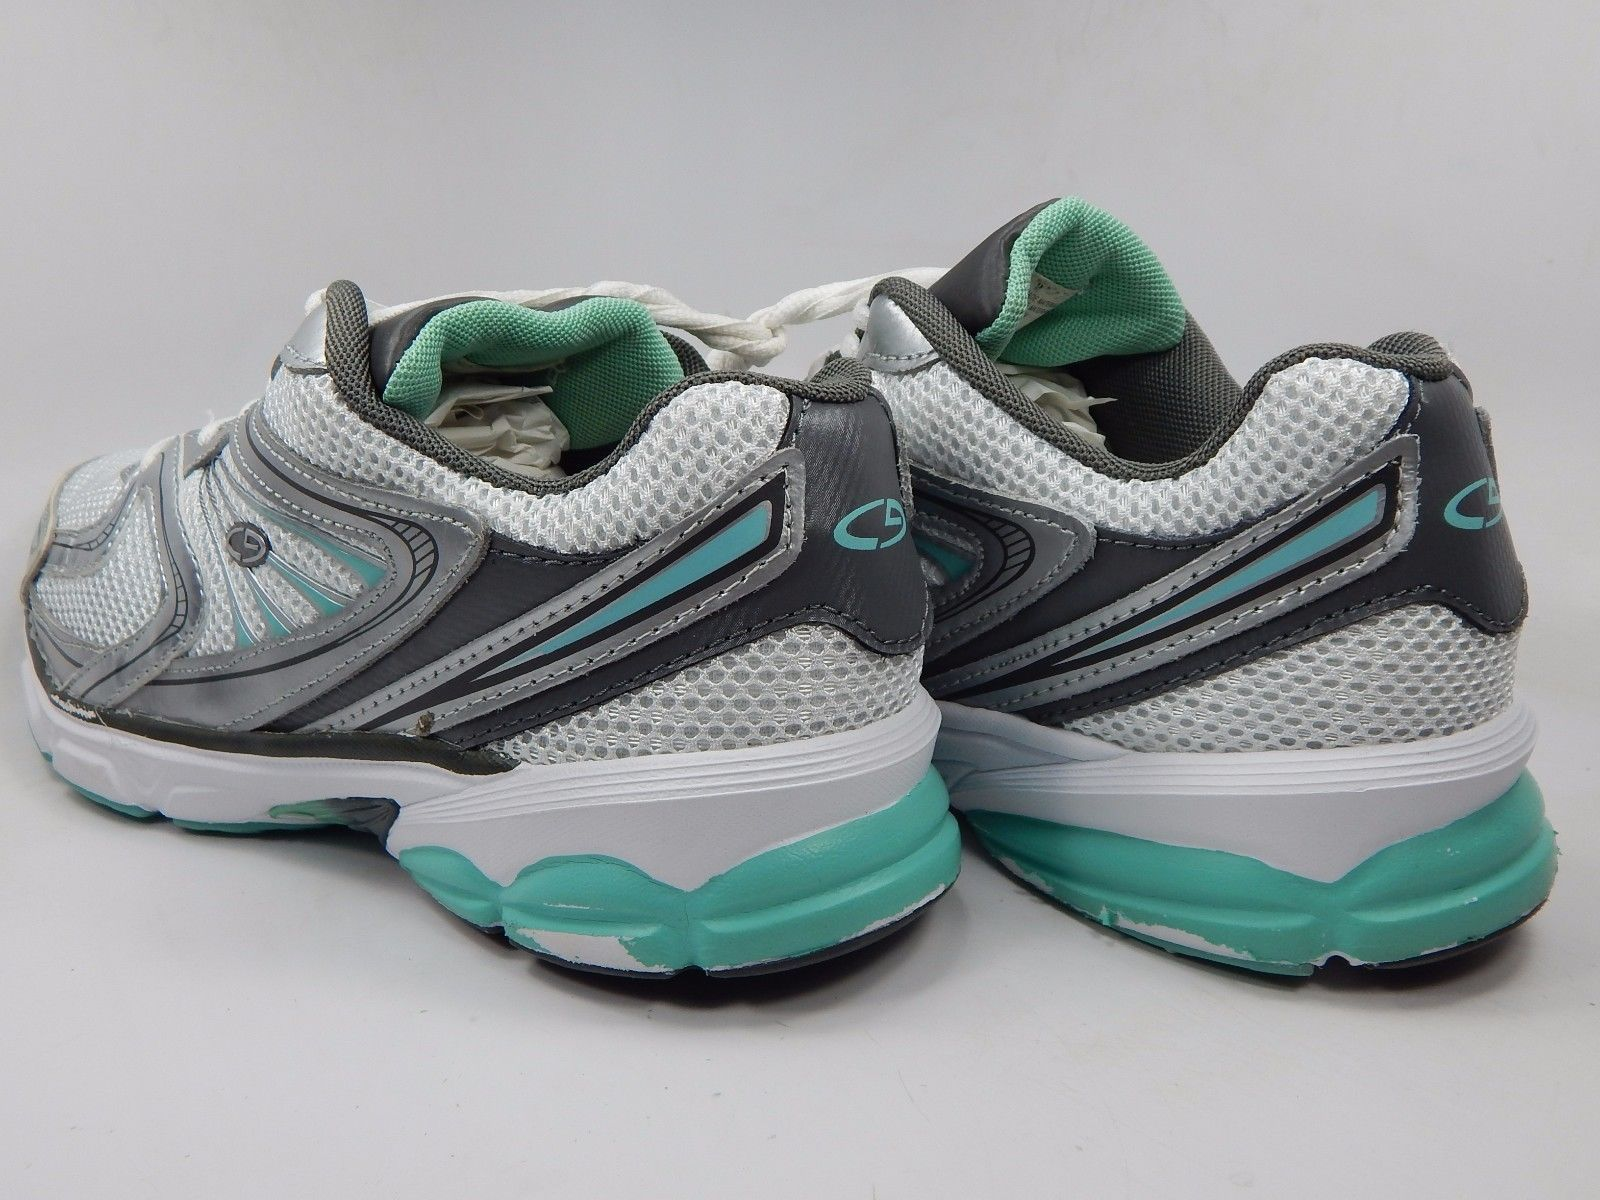 Champion 098072559 Women's Running Shoes Size US 9 M (B) EU 41.5 F16893092